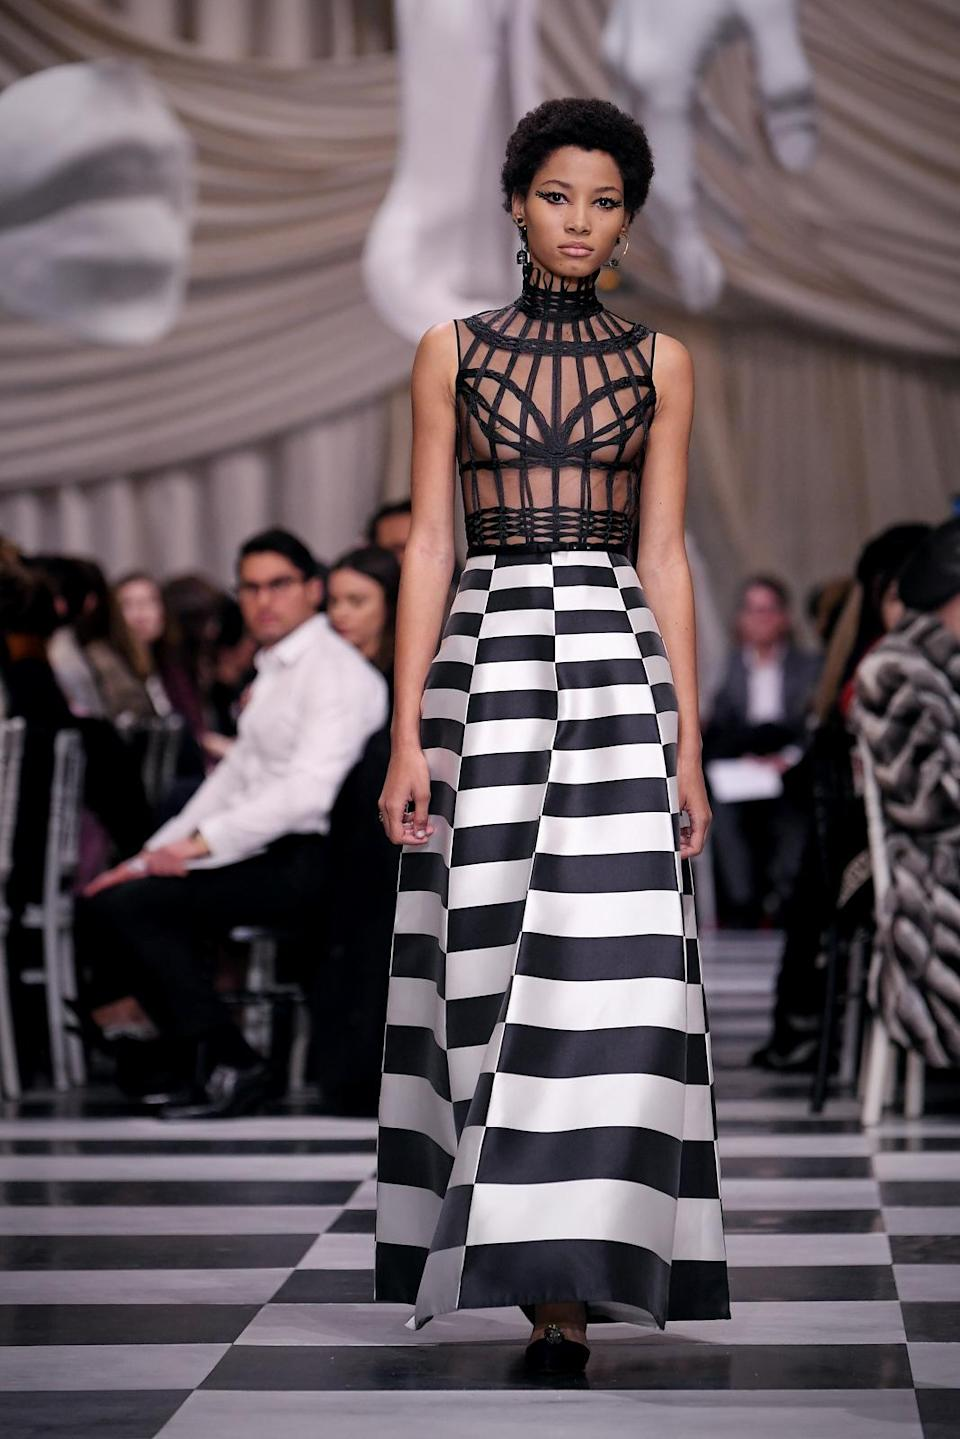 <p>Model wears a black caged bodice and black and white checkered skirt from the Dior Haute Couture SS18 collection. (Photo: Getty) </p>